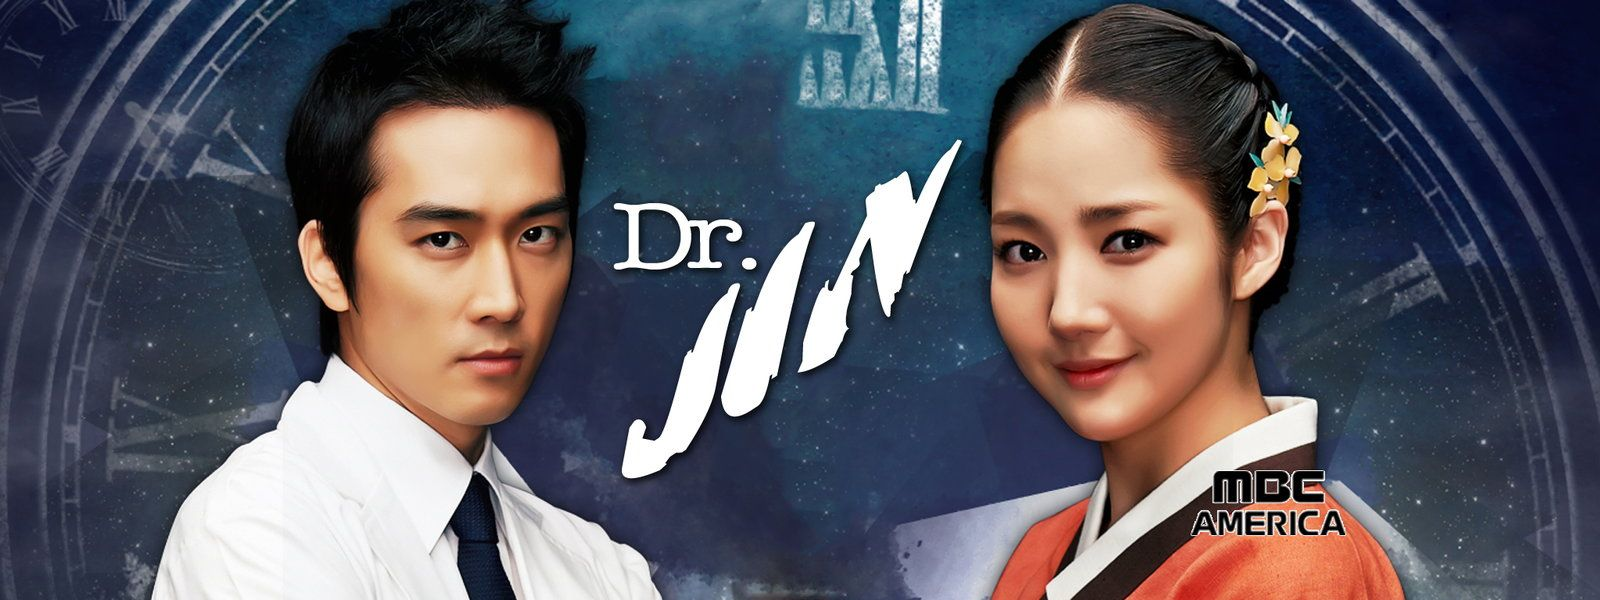 Watch Dr Jin Online Free Hulu Doctor Who Things Happen Traveling